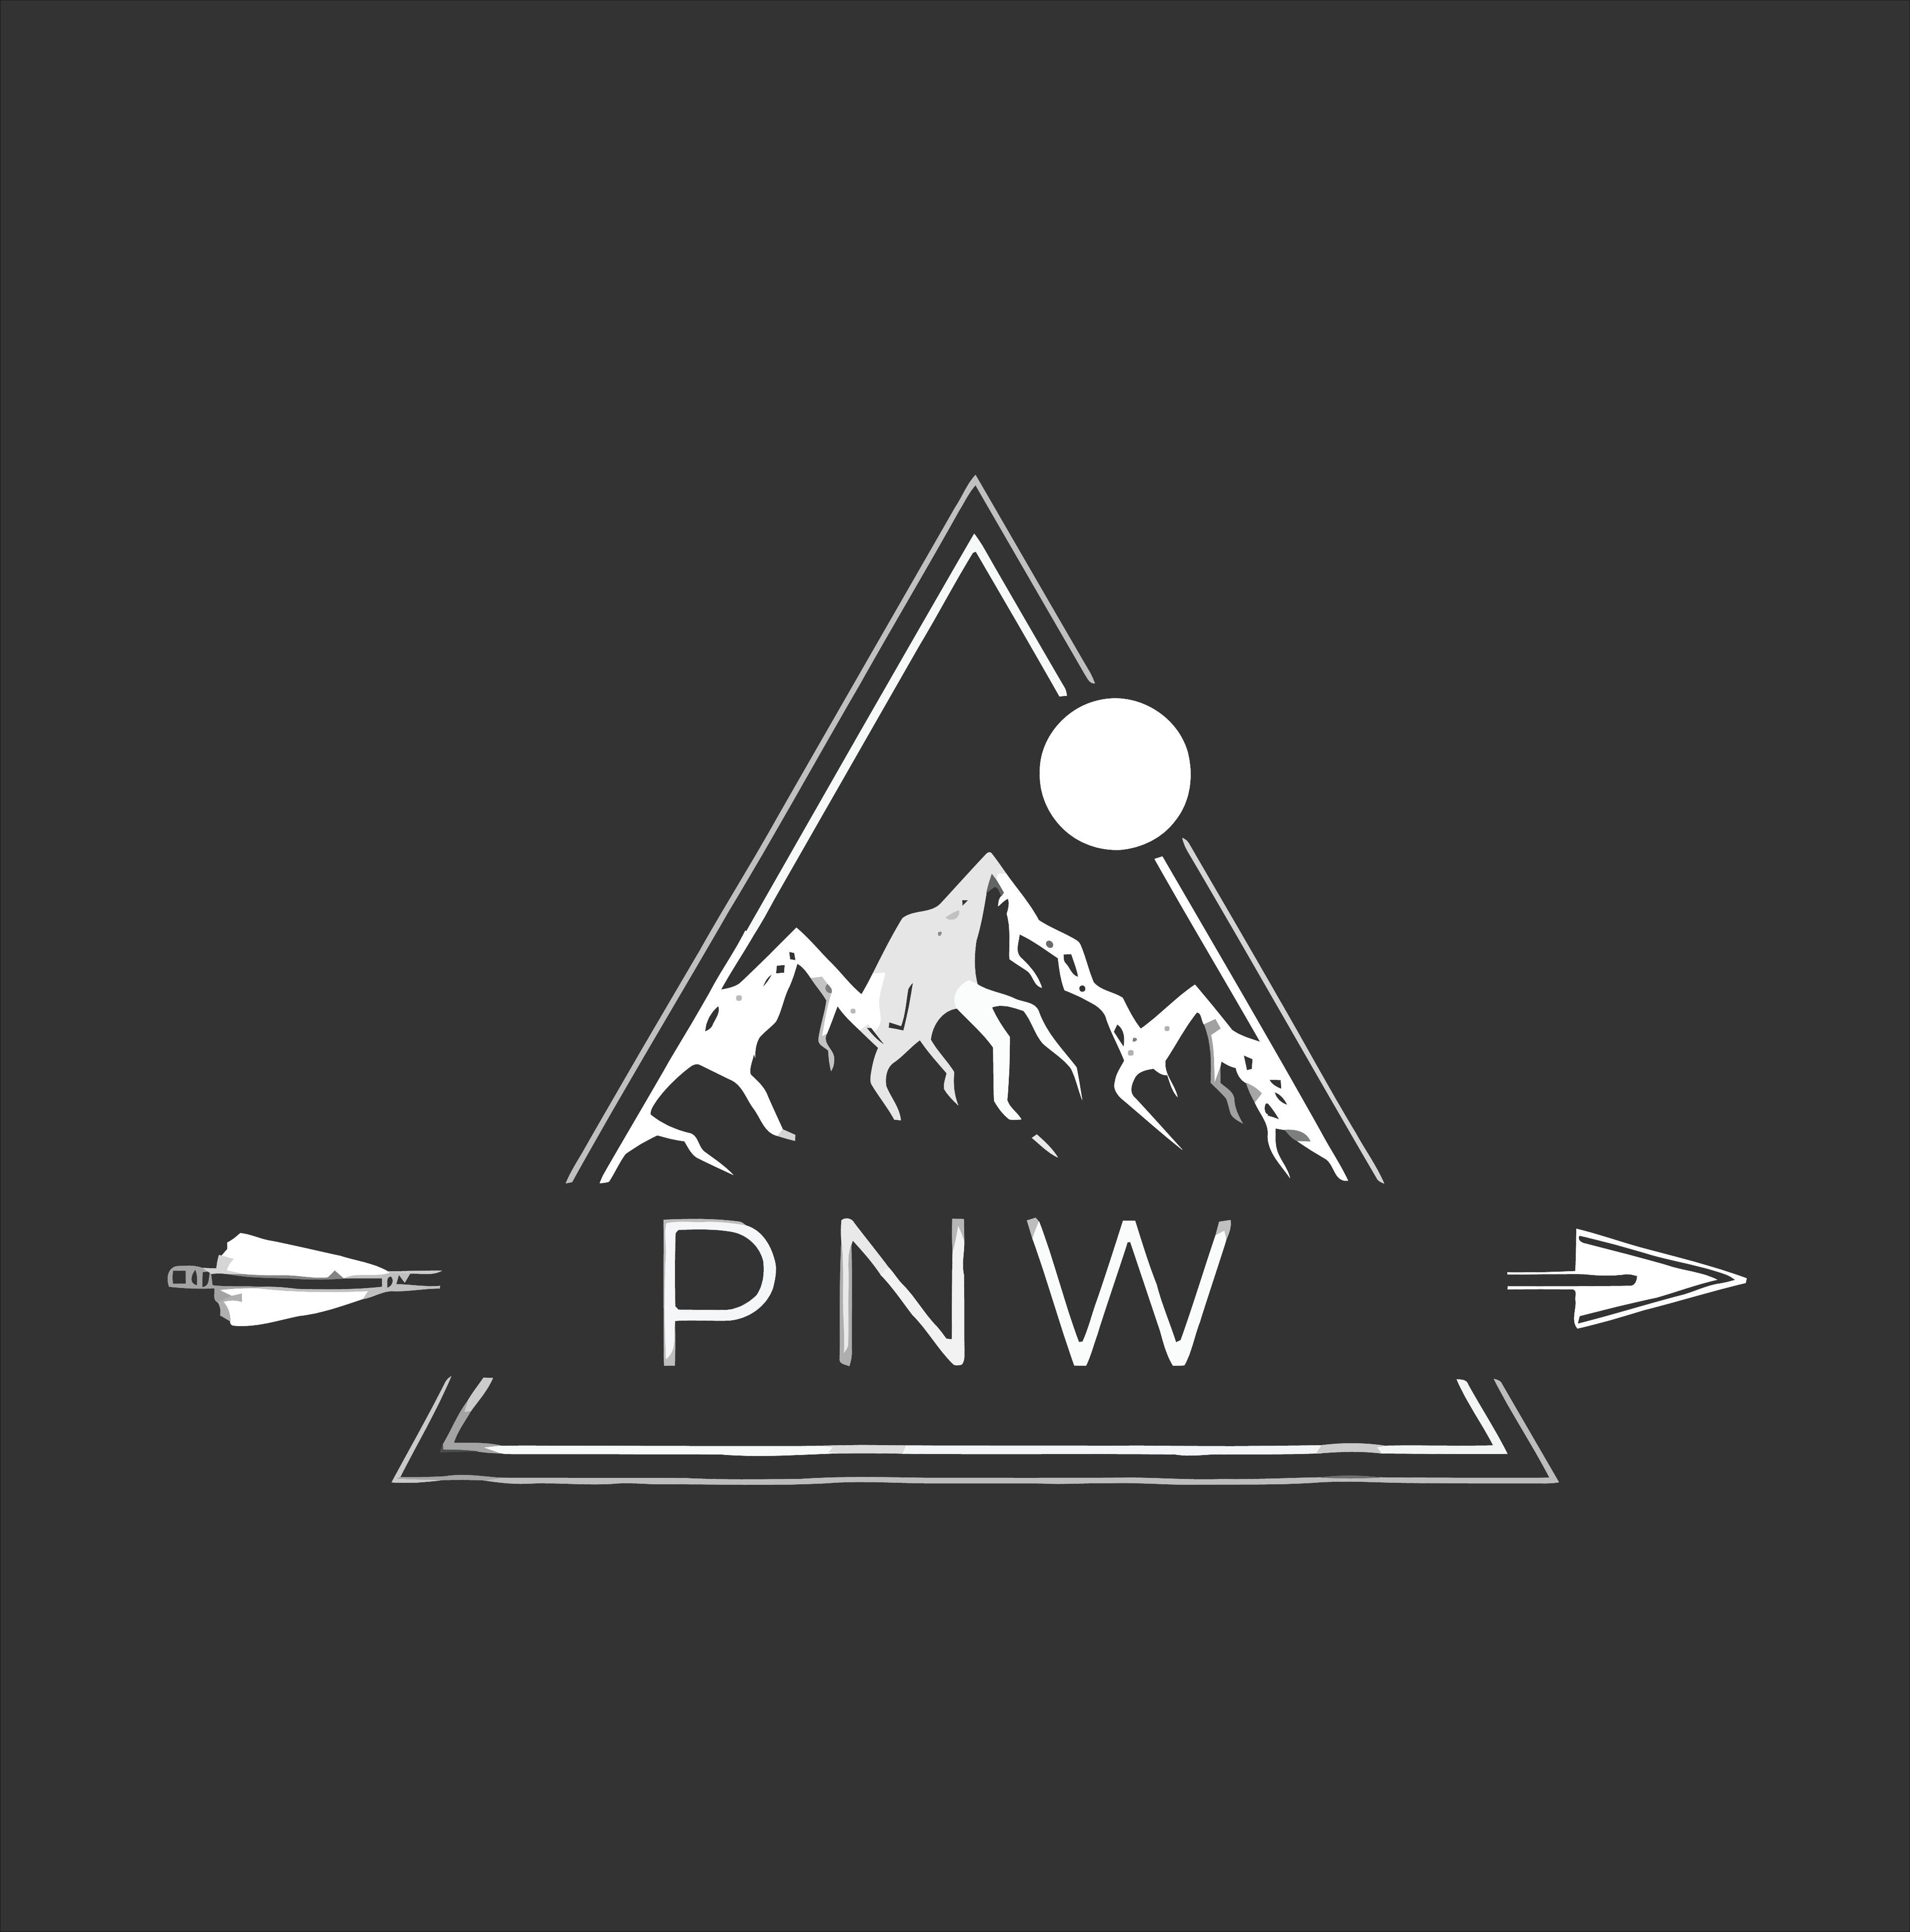 PNW CBD brands promotion from Cannabi Seattle